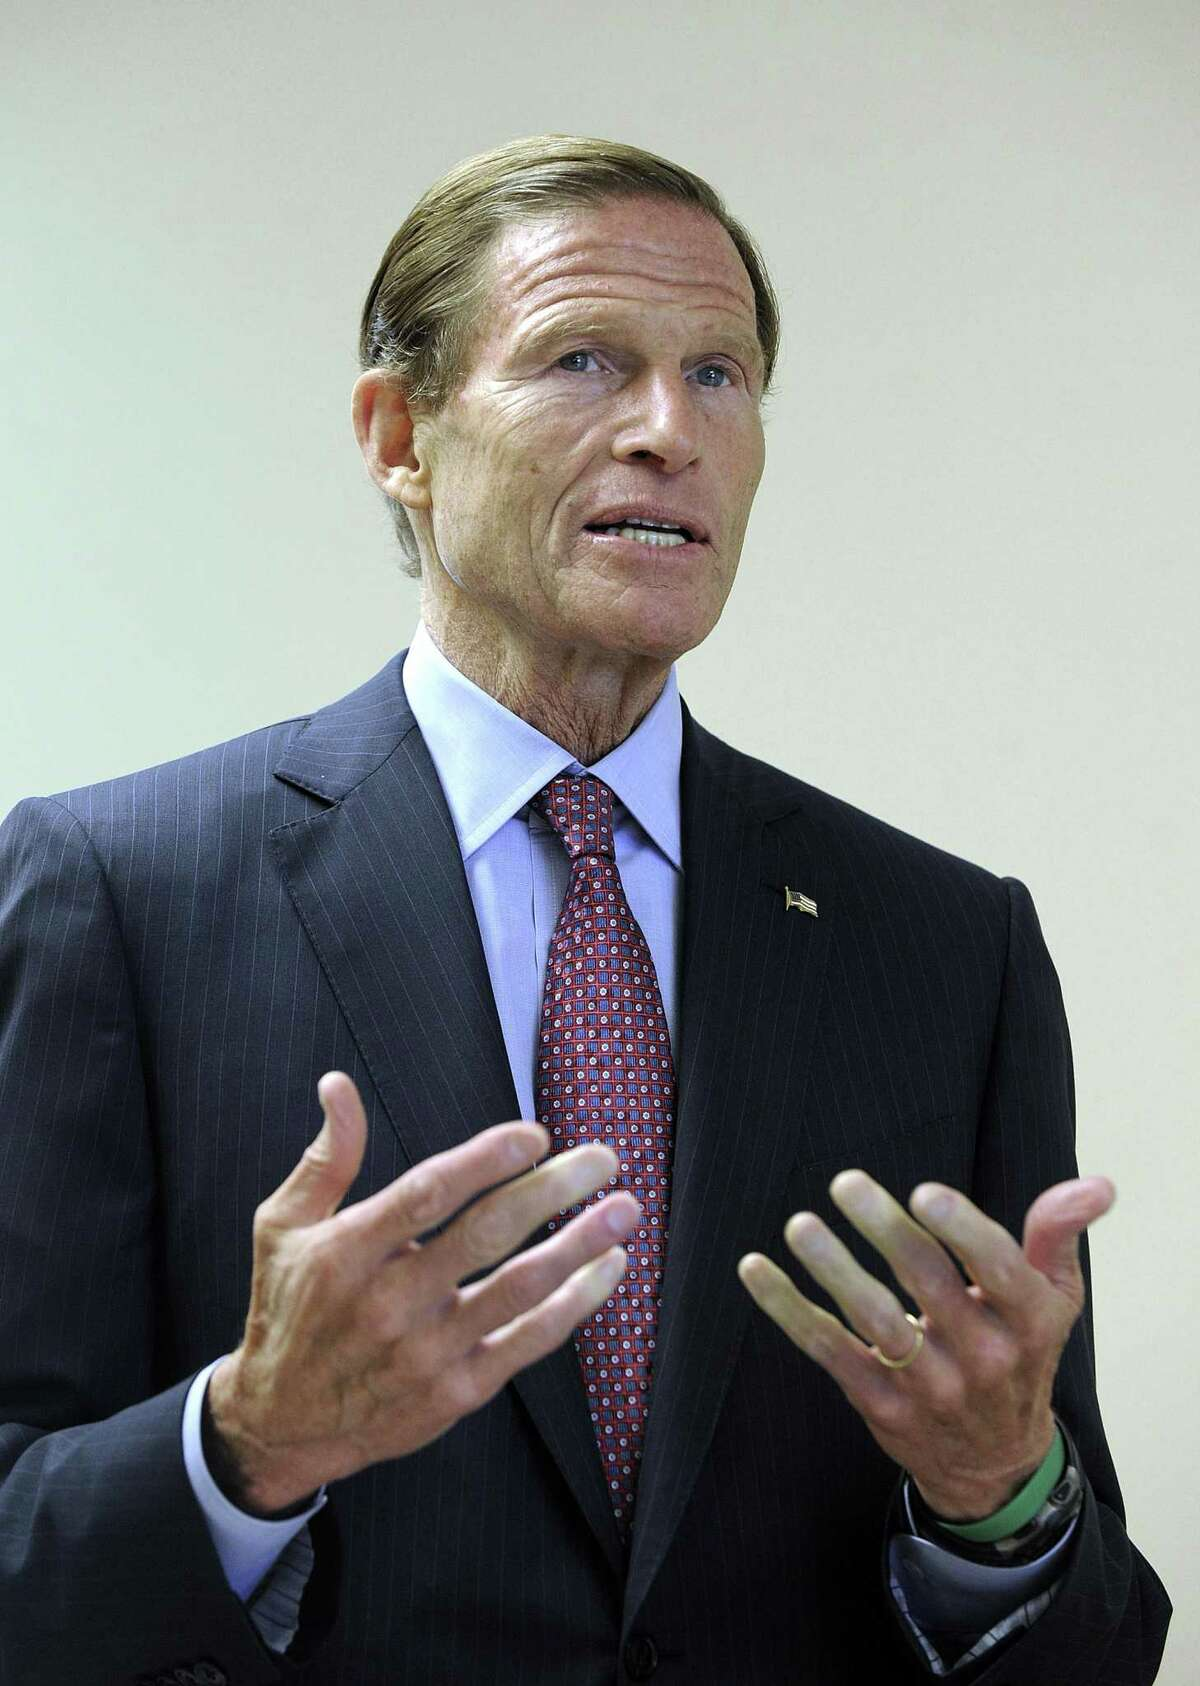 U.S. Sen. Richard Blumenthal is a supporter of Medicare for all legislation, which could negatively affect the state's insurance industry.